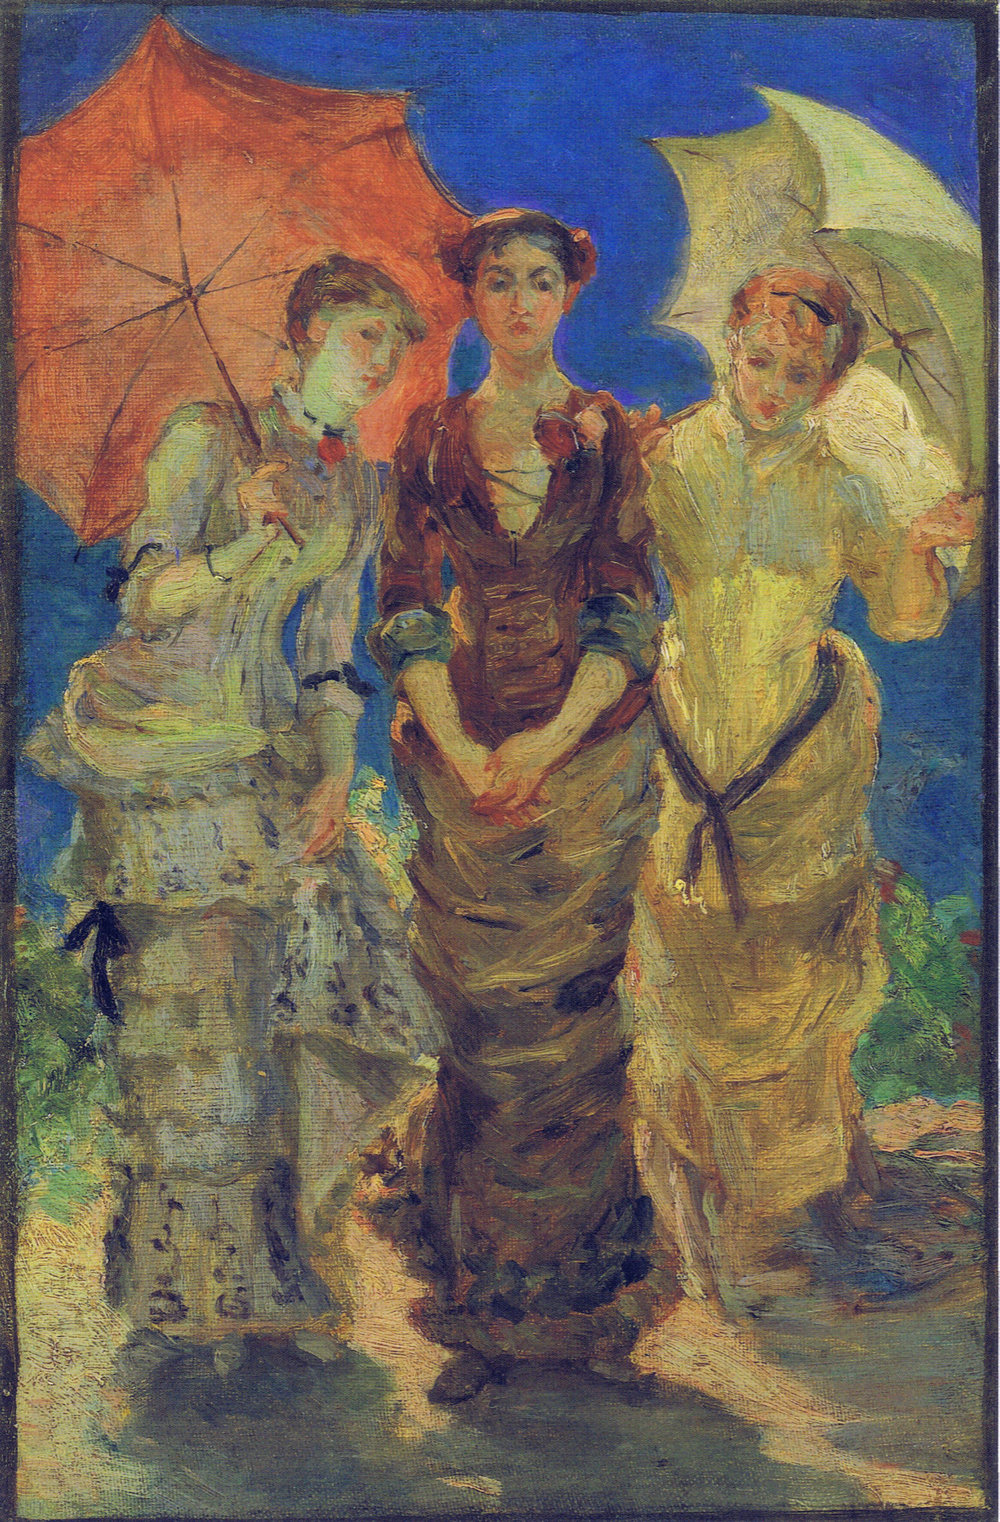 """The Three Graces"", Marie Bracquemond, 1880 Image courtesy of The Trivium Art History Project."